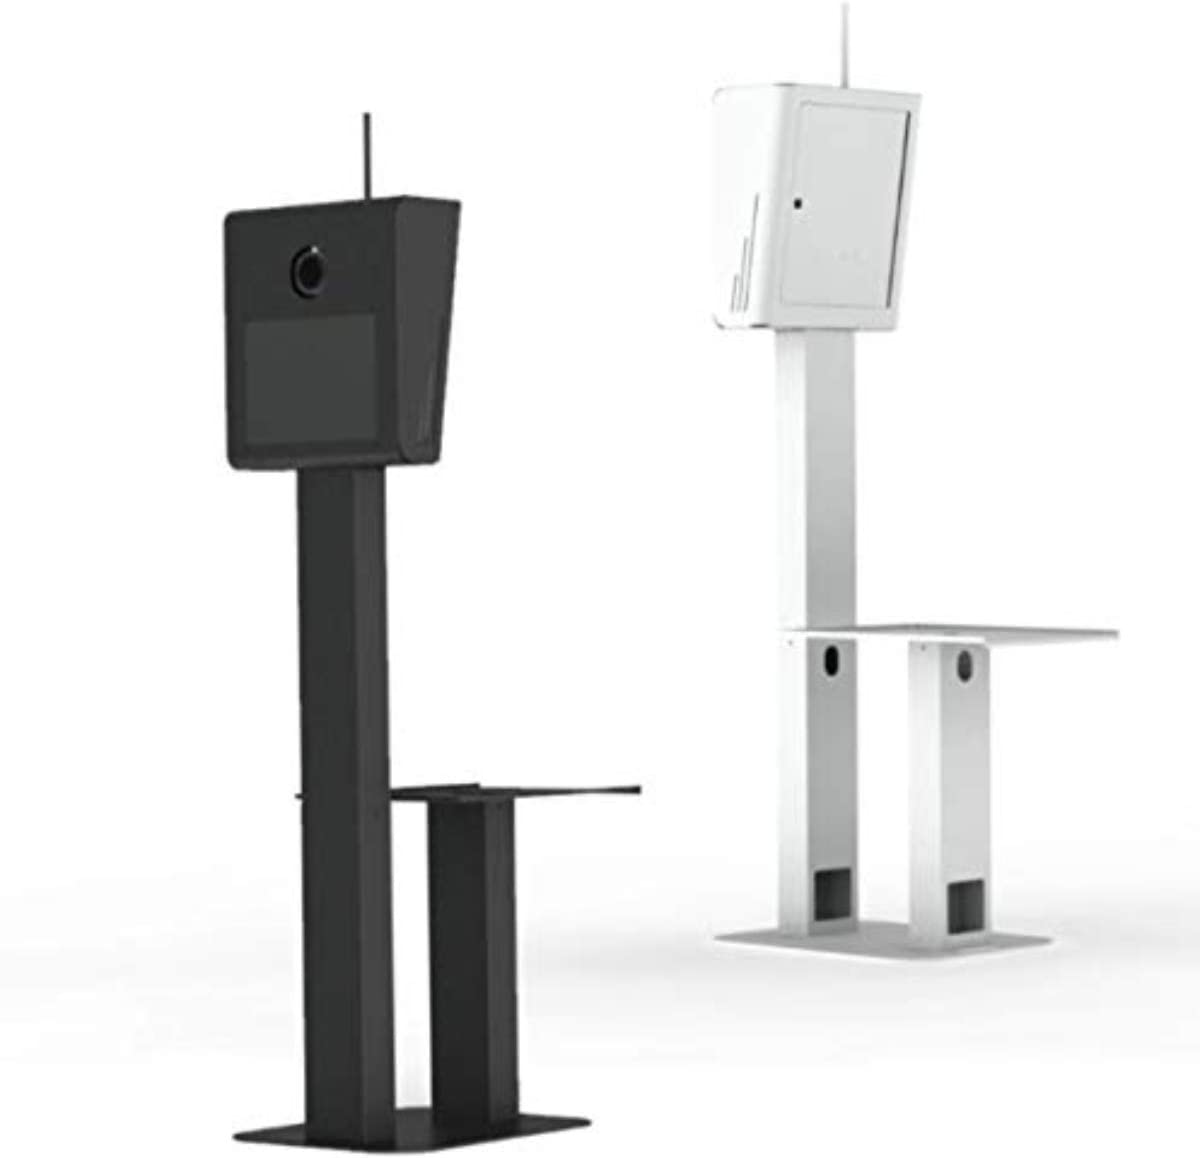 T11 4.0 Photo Booth Branding Capability Light and Maximum Portable Shell with Rectangular Shaped Stand Printer Stand, White